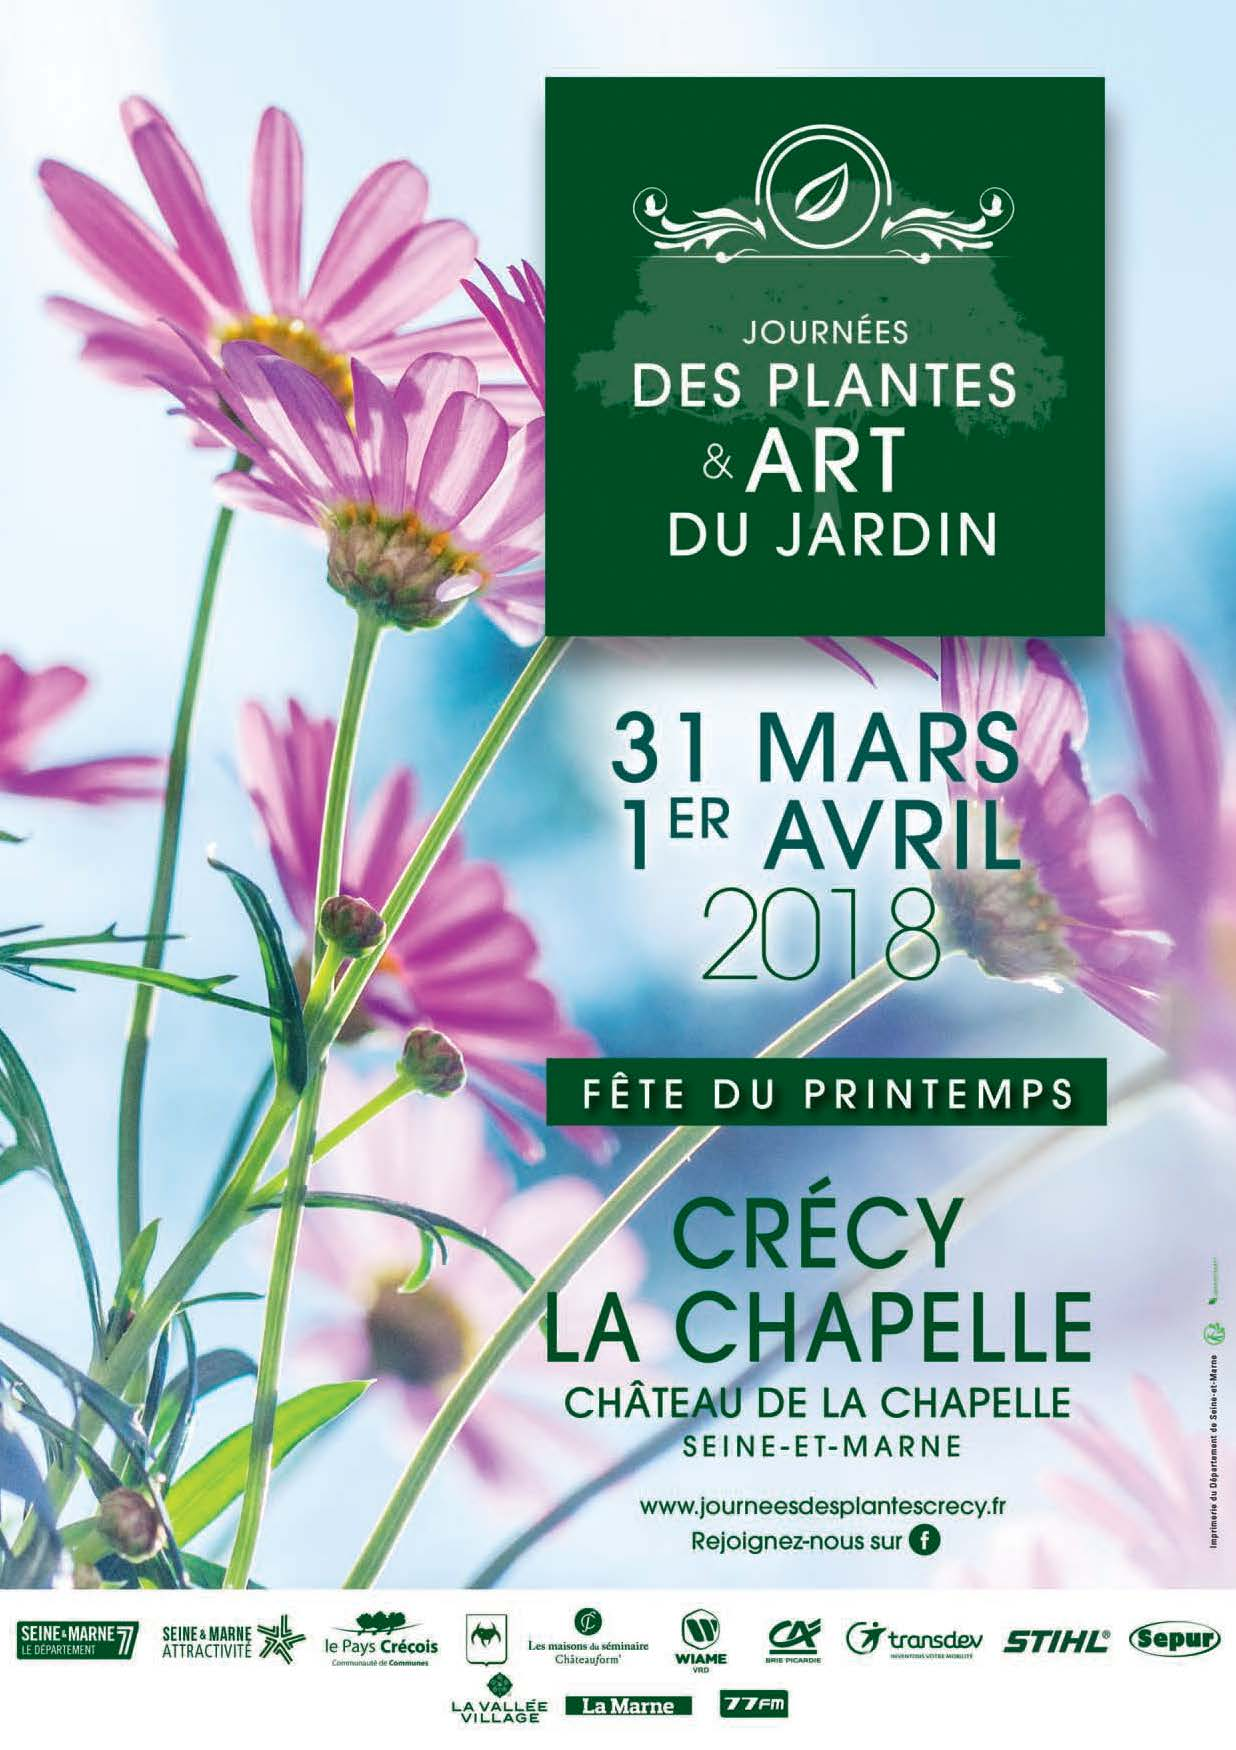 Affiche journée de plantes crecy la chapelle 2018